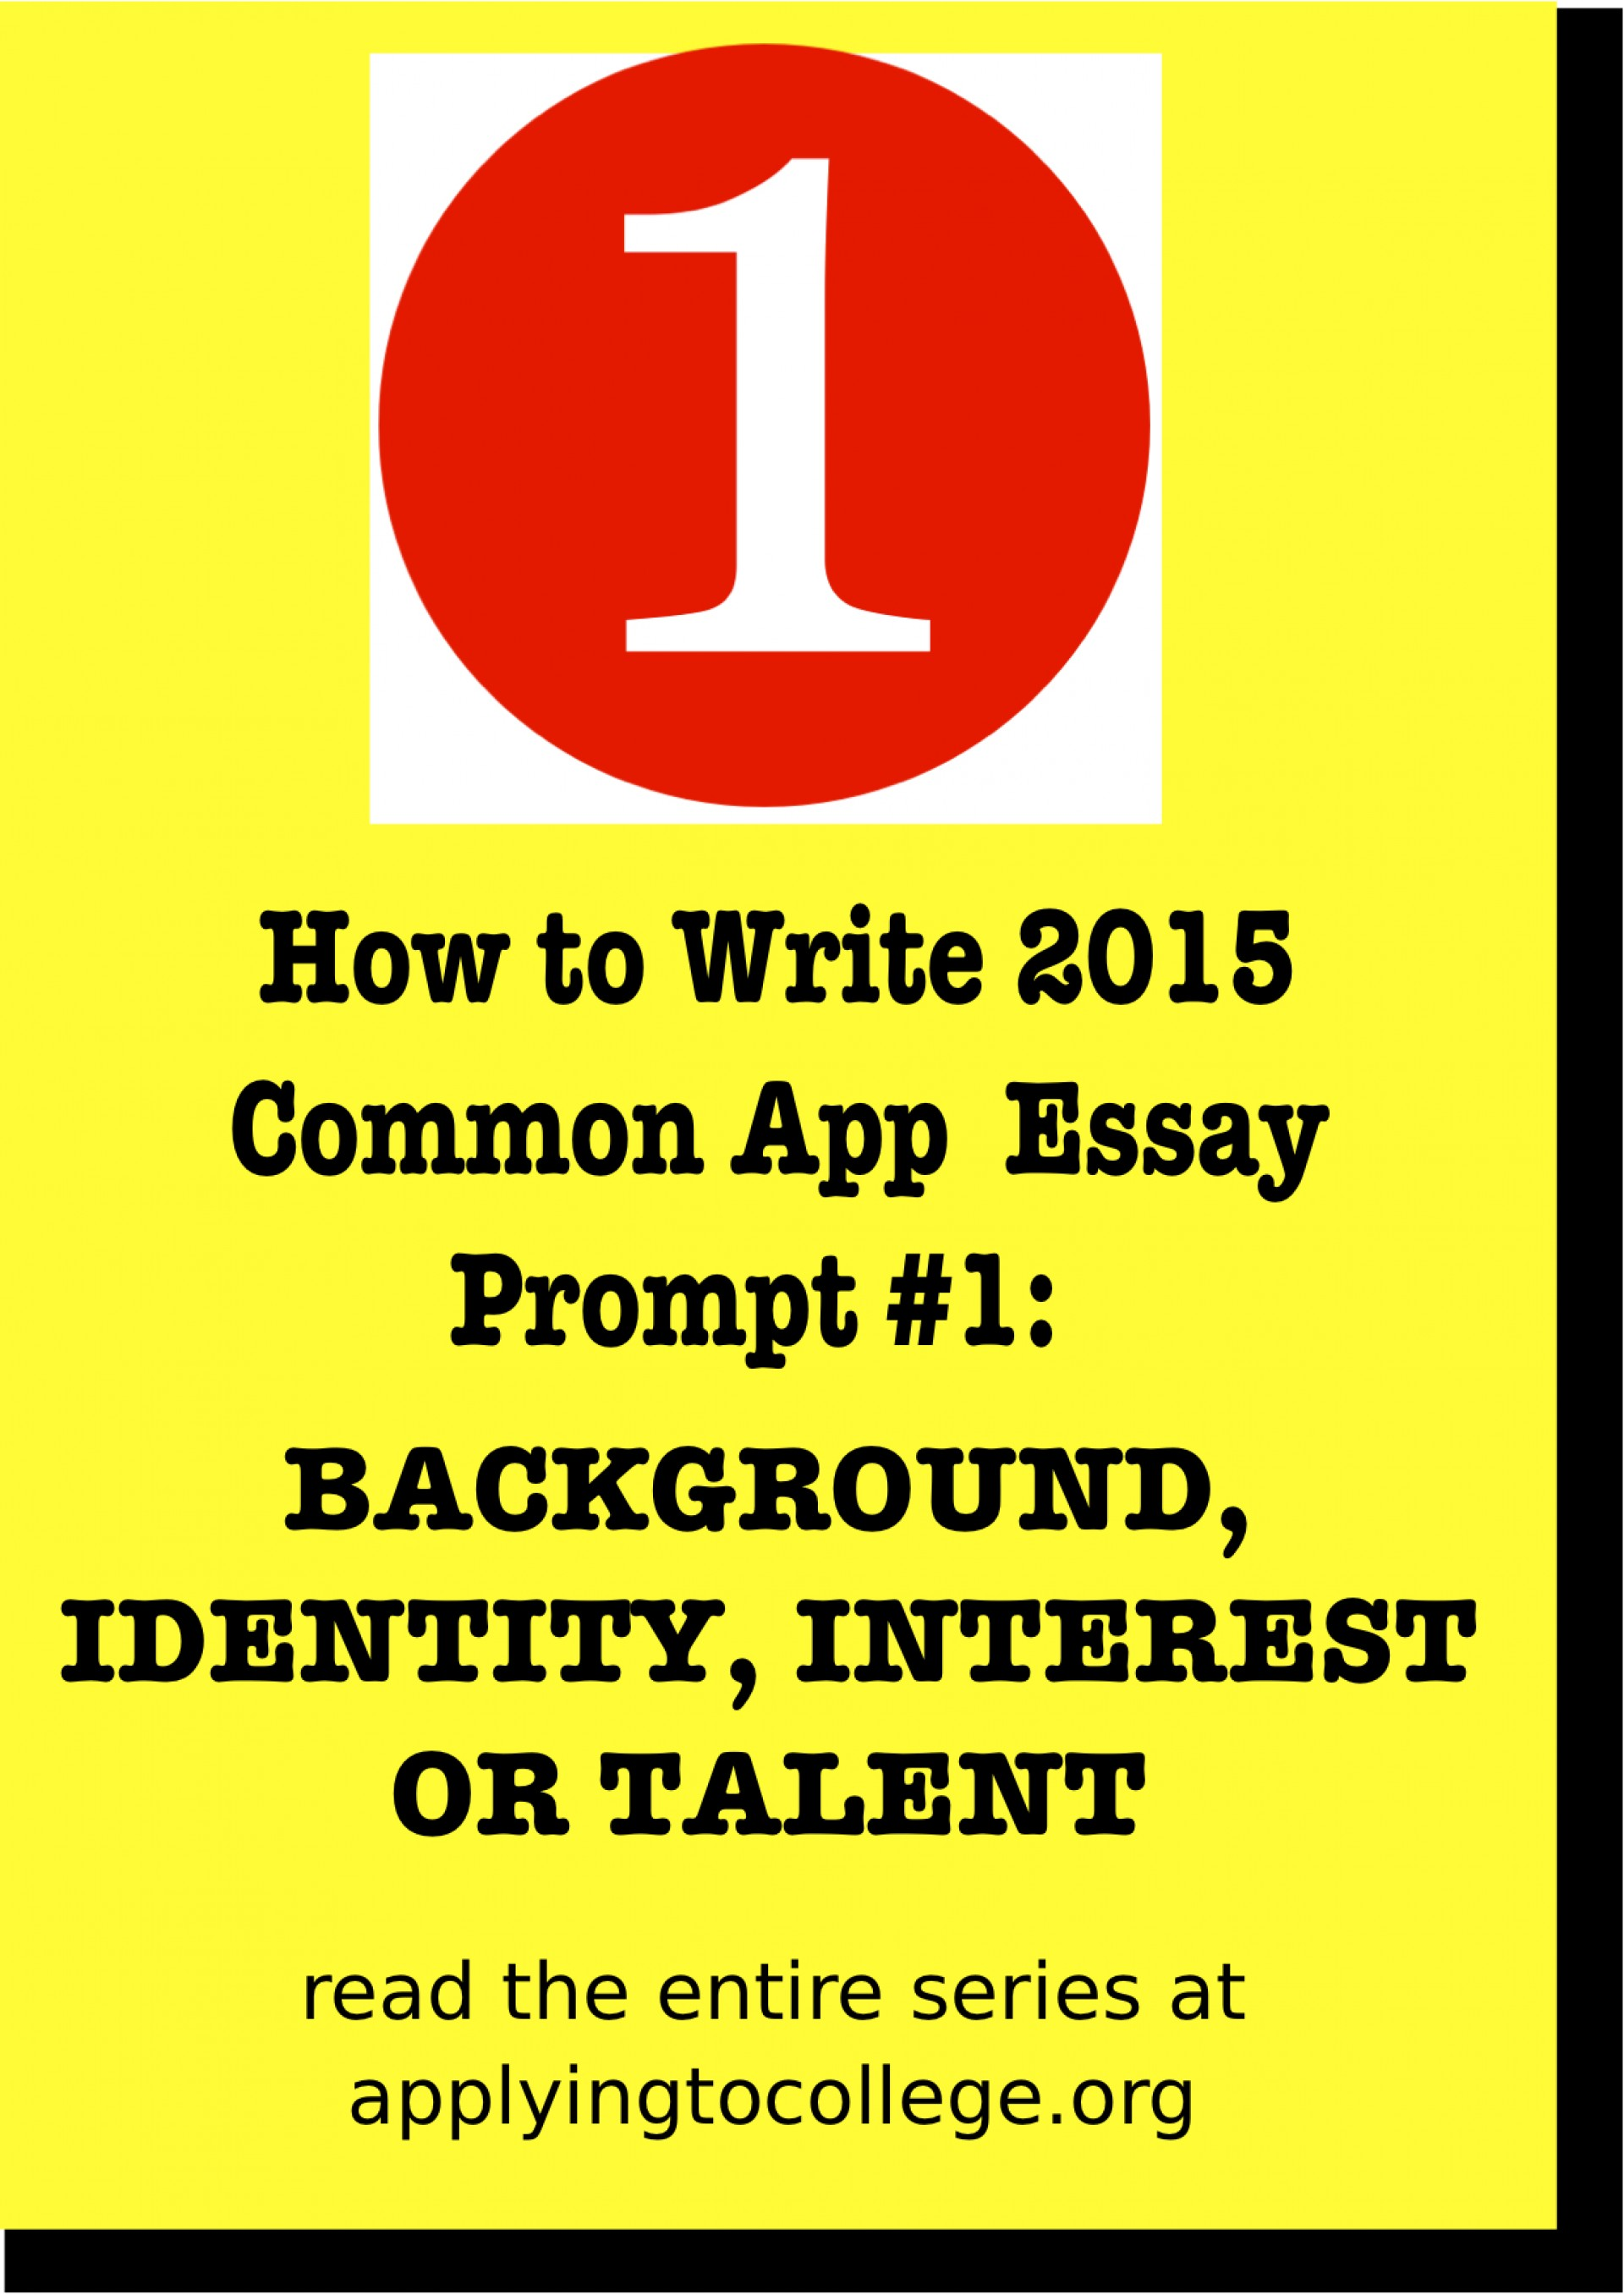 004 Essay Example Prompts For College Essays How To Write Common App Unusual 2015 1920